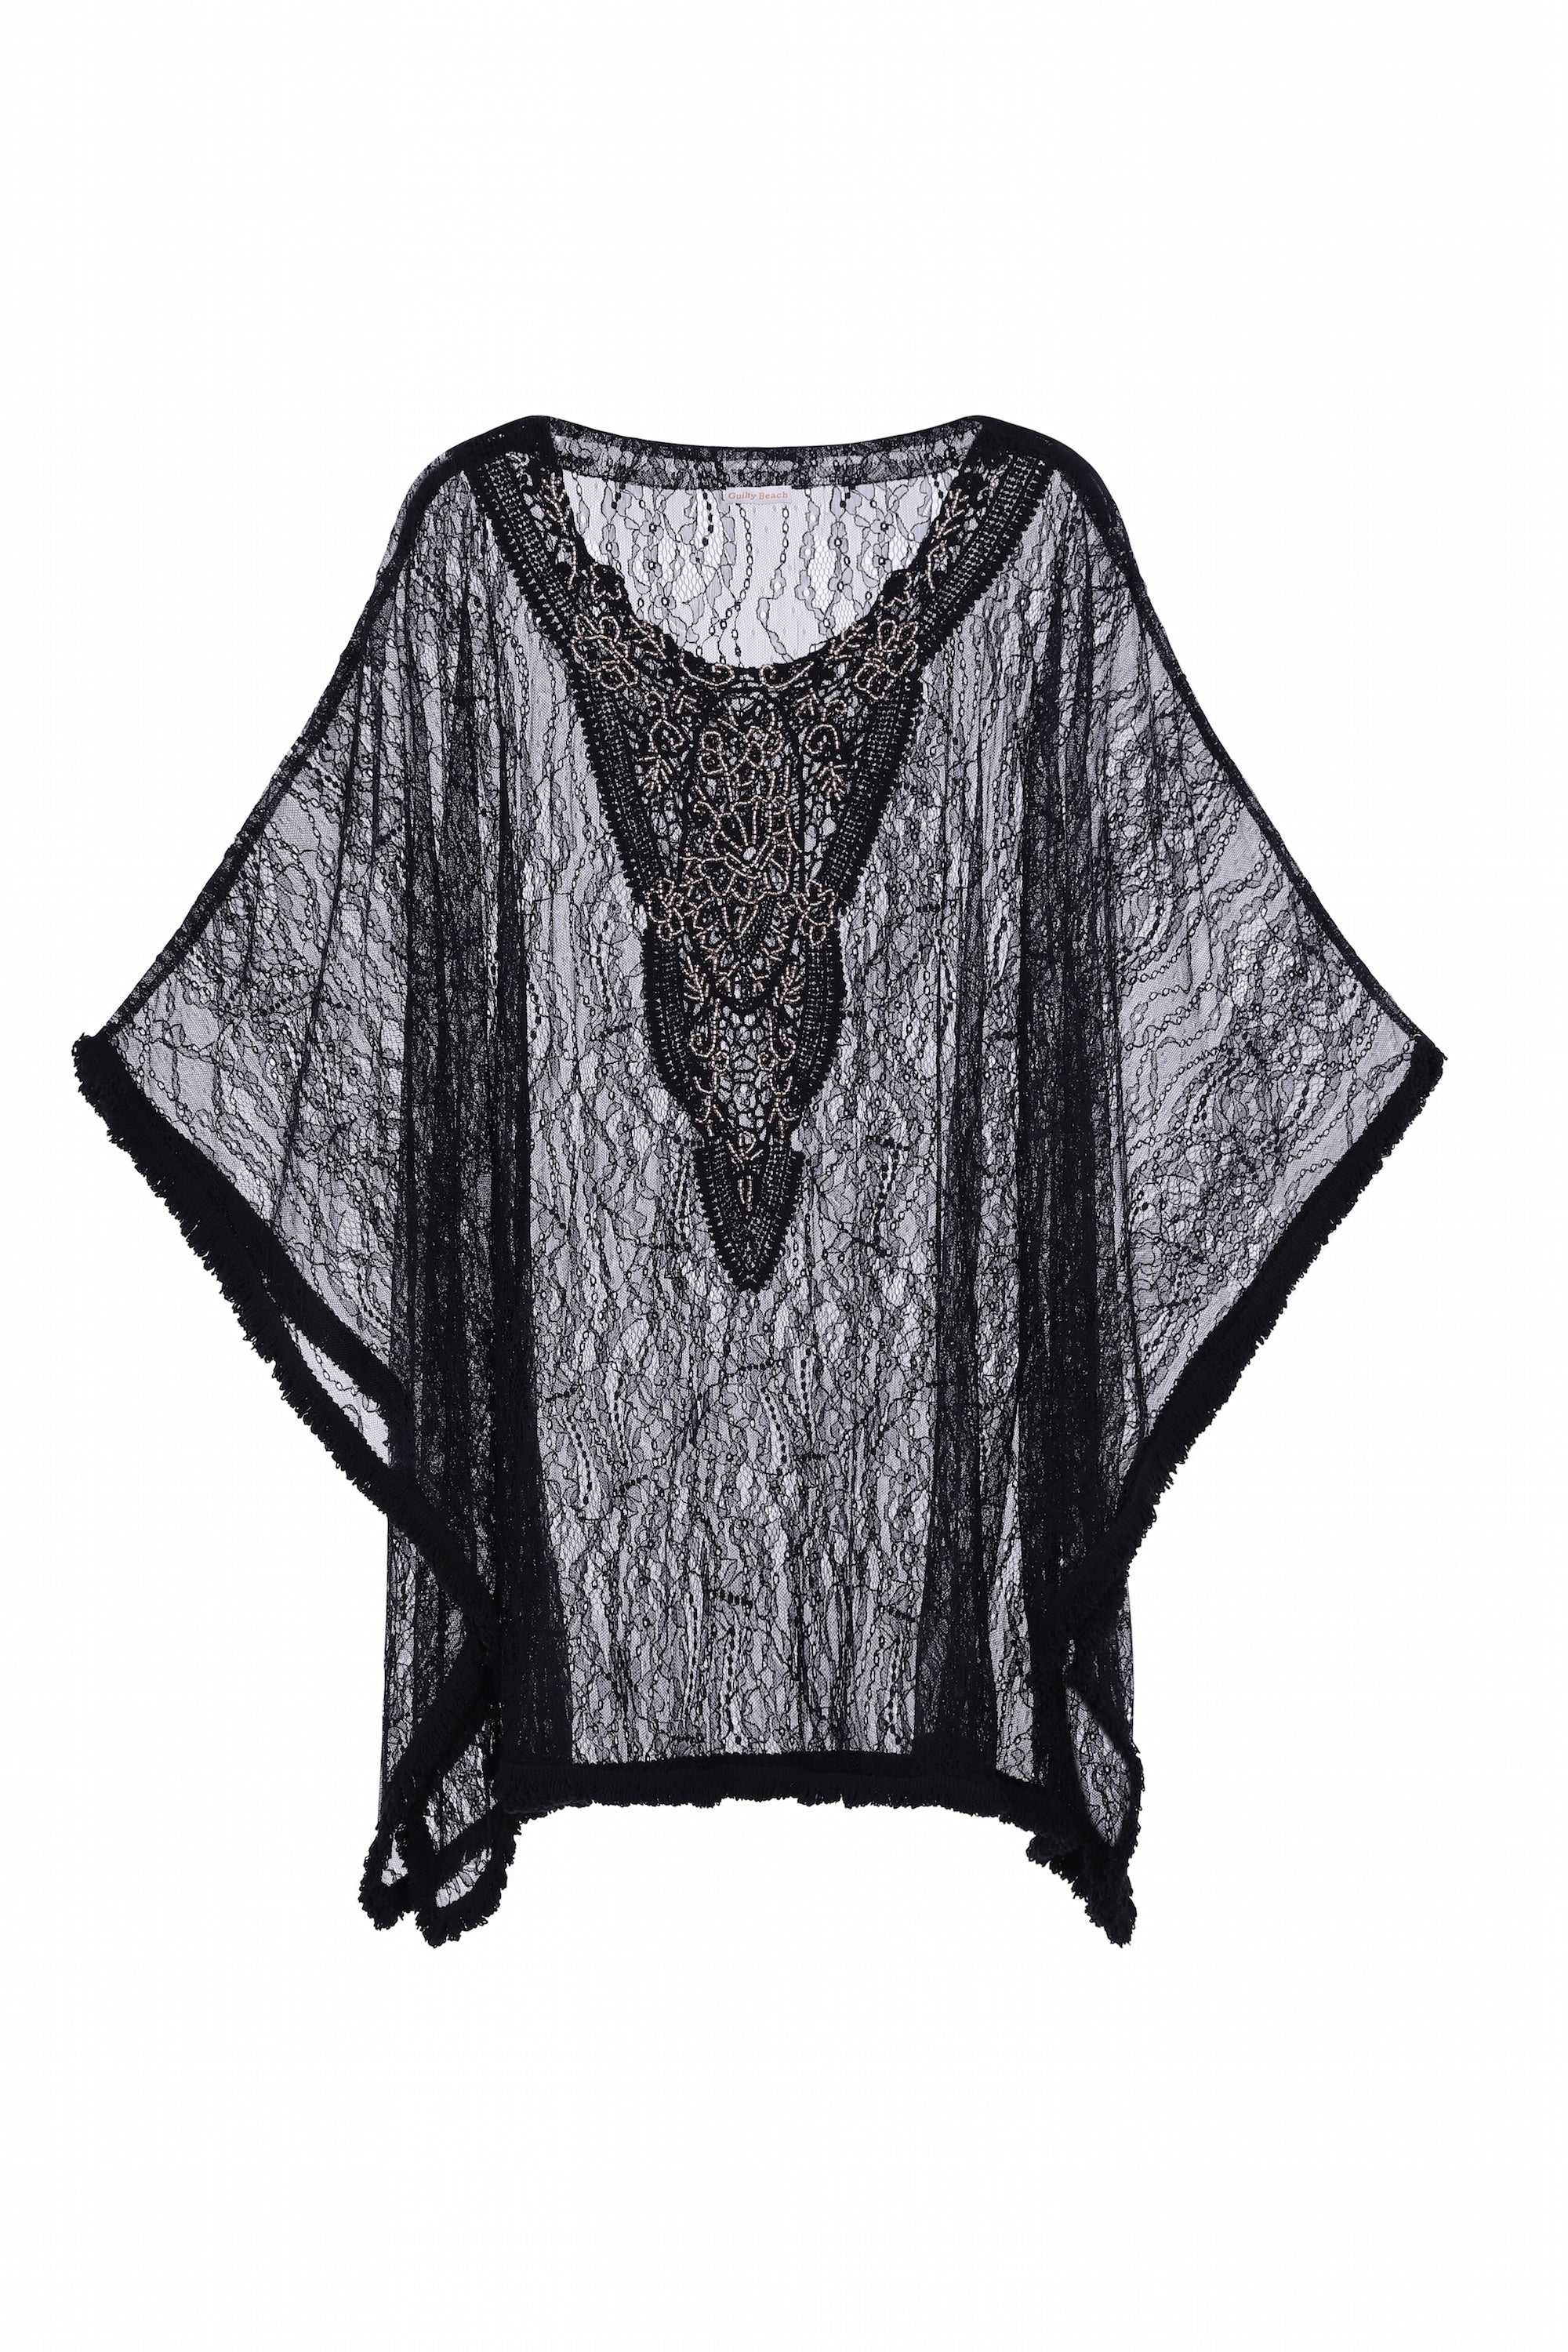 Mijas lace handed beaded kaftan in black - Guilty Beach